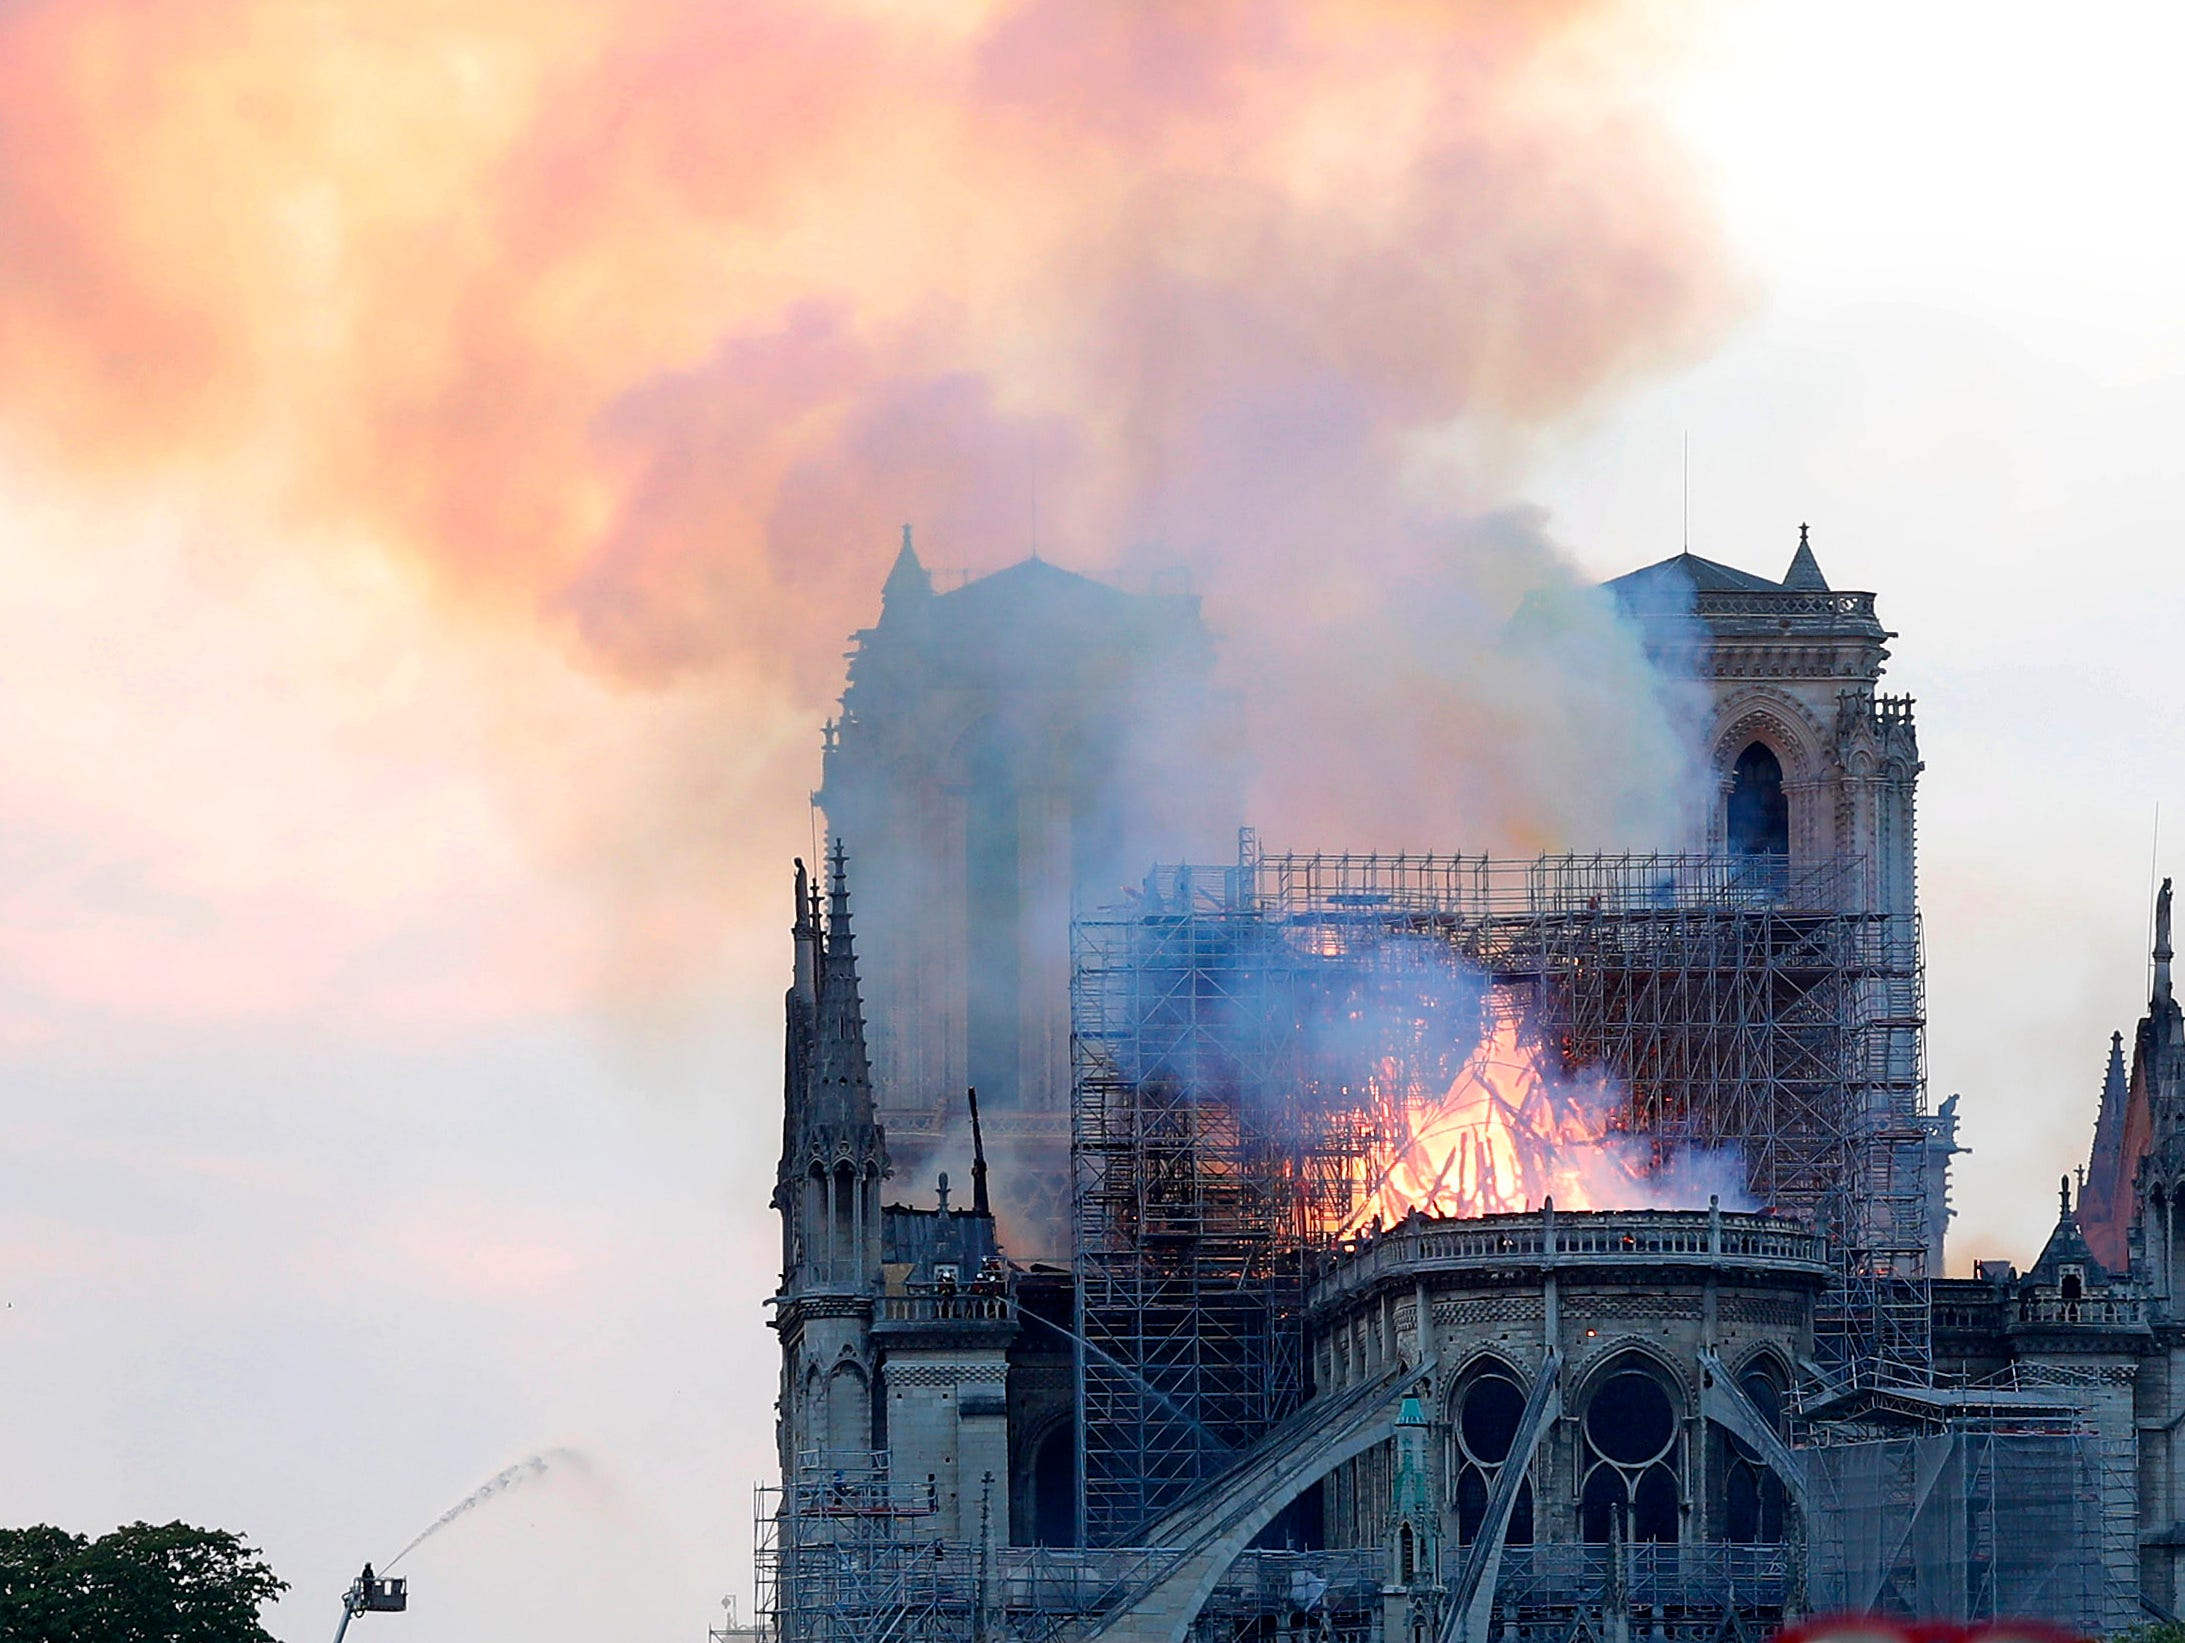 A firefighter tackles the blaze as flames and smoke rise from Notre Dame cathedral as it burns in Paris, Monday, April 15, 2019. Massive plumes of yellow brown smoke is filling the air above Notre Dame Cathedral and ash is falling on tourists and others around the island that marks the center of Paris. (AP Photo/Thibault Camus)